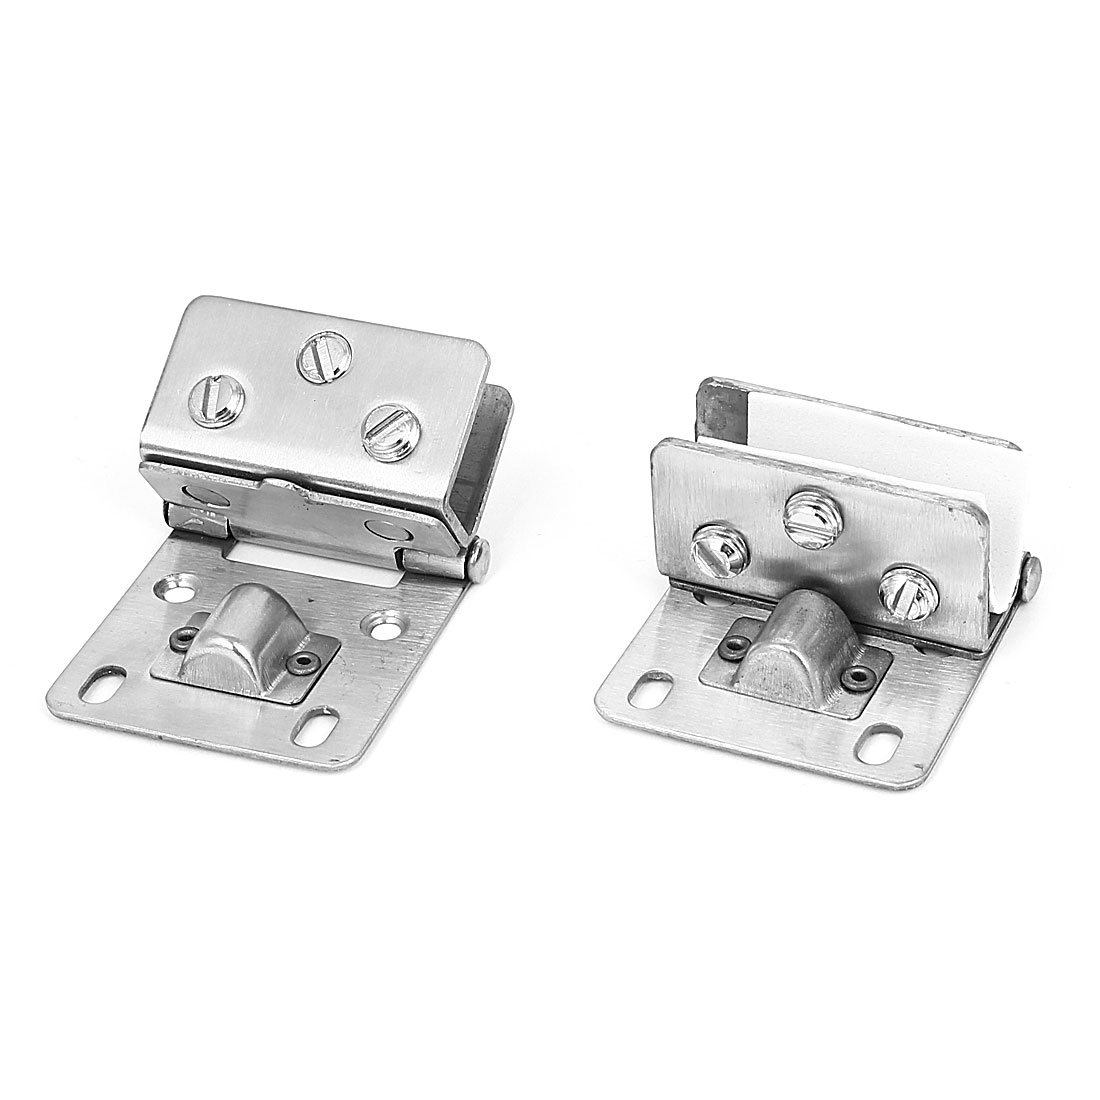 Stainless Steel 9mm-12mm Thickness Glass Shelf Clips Clamps Support Bracket 2 Pcs